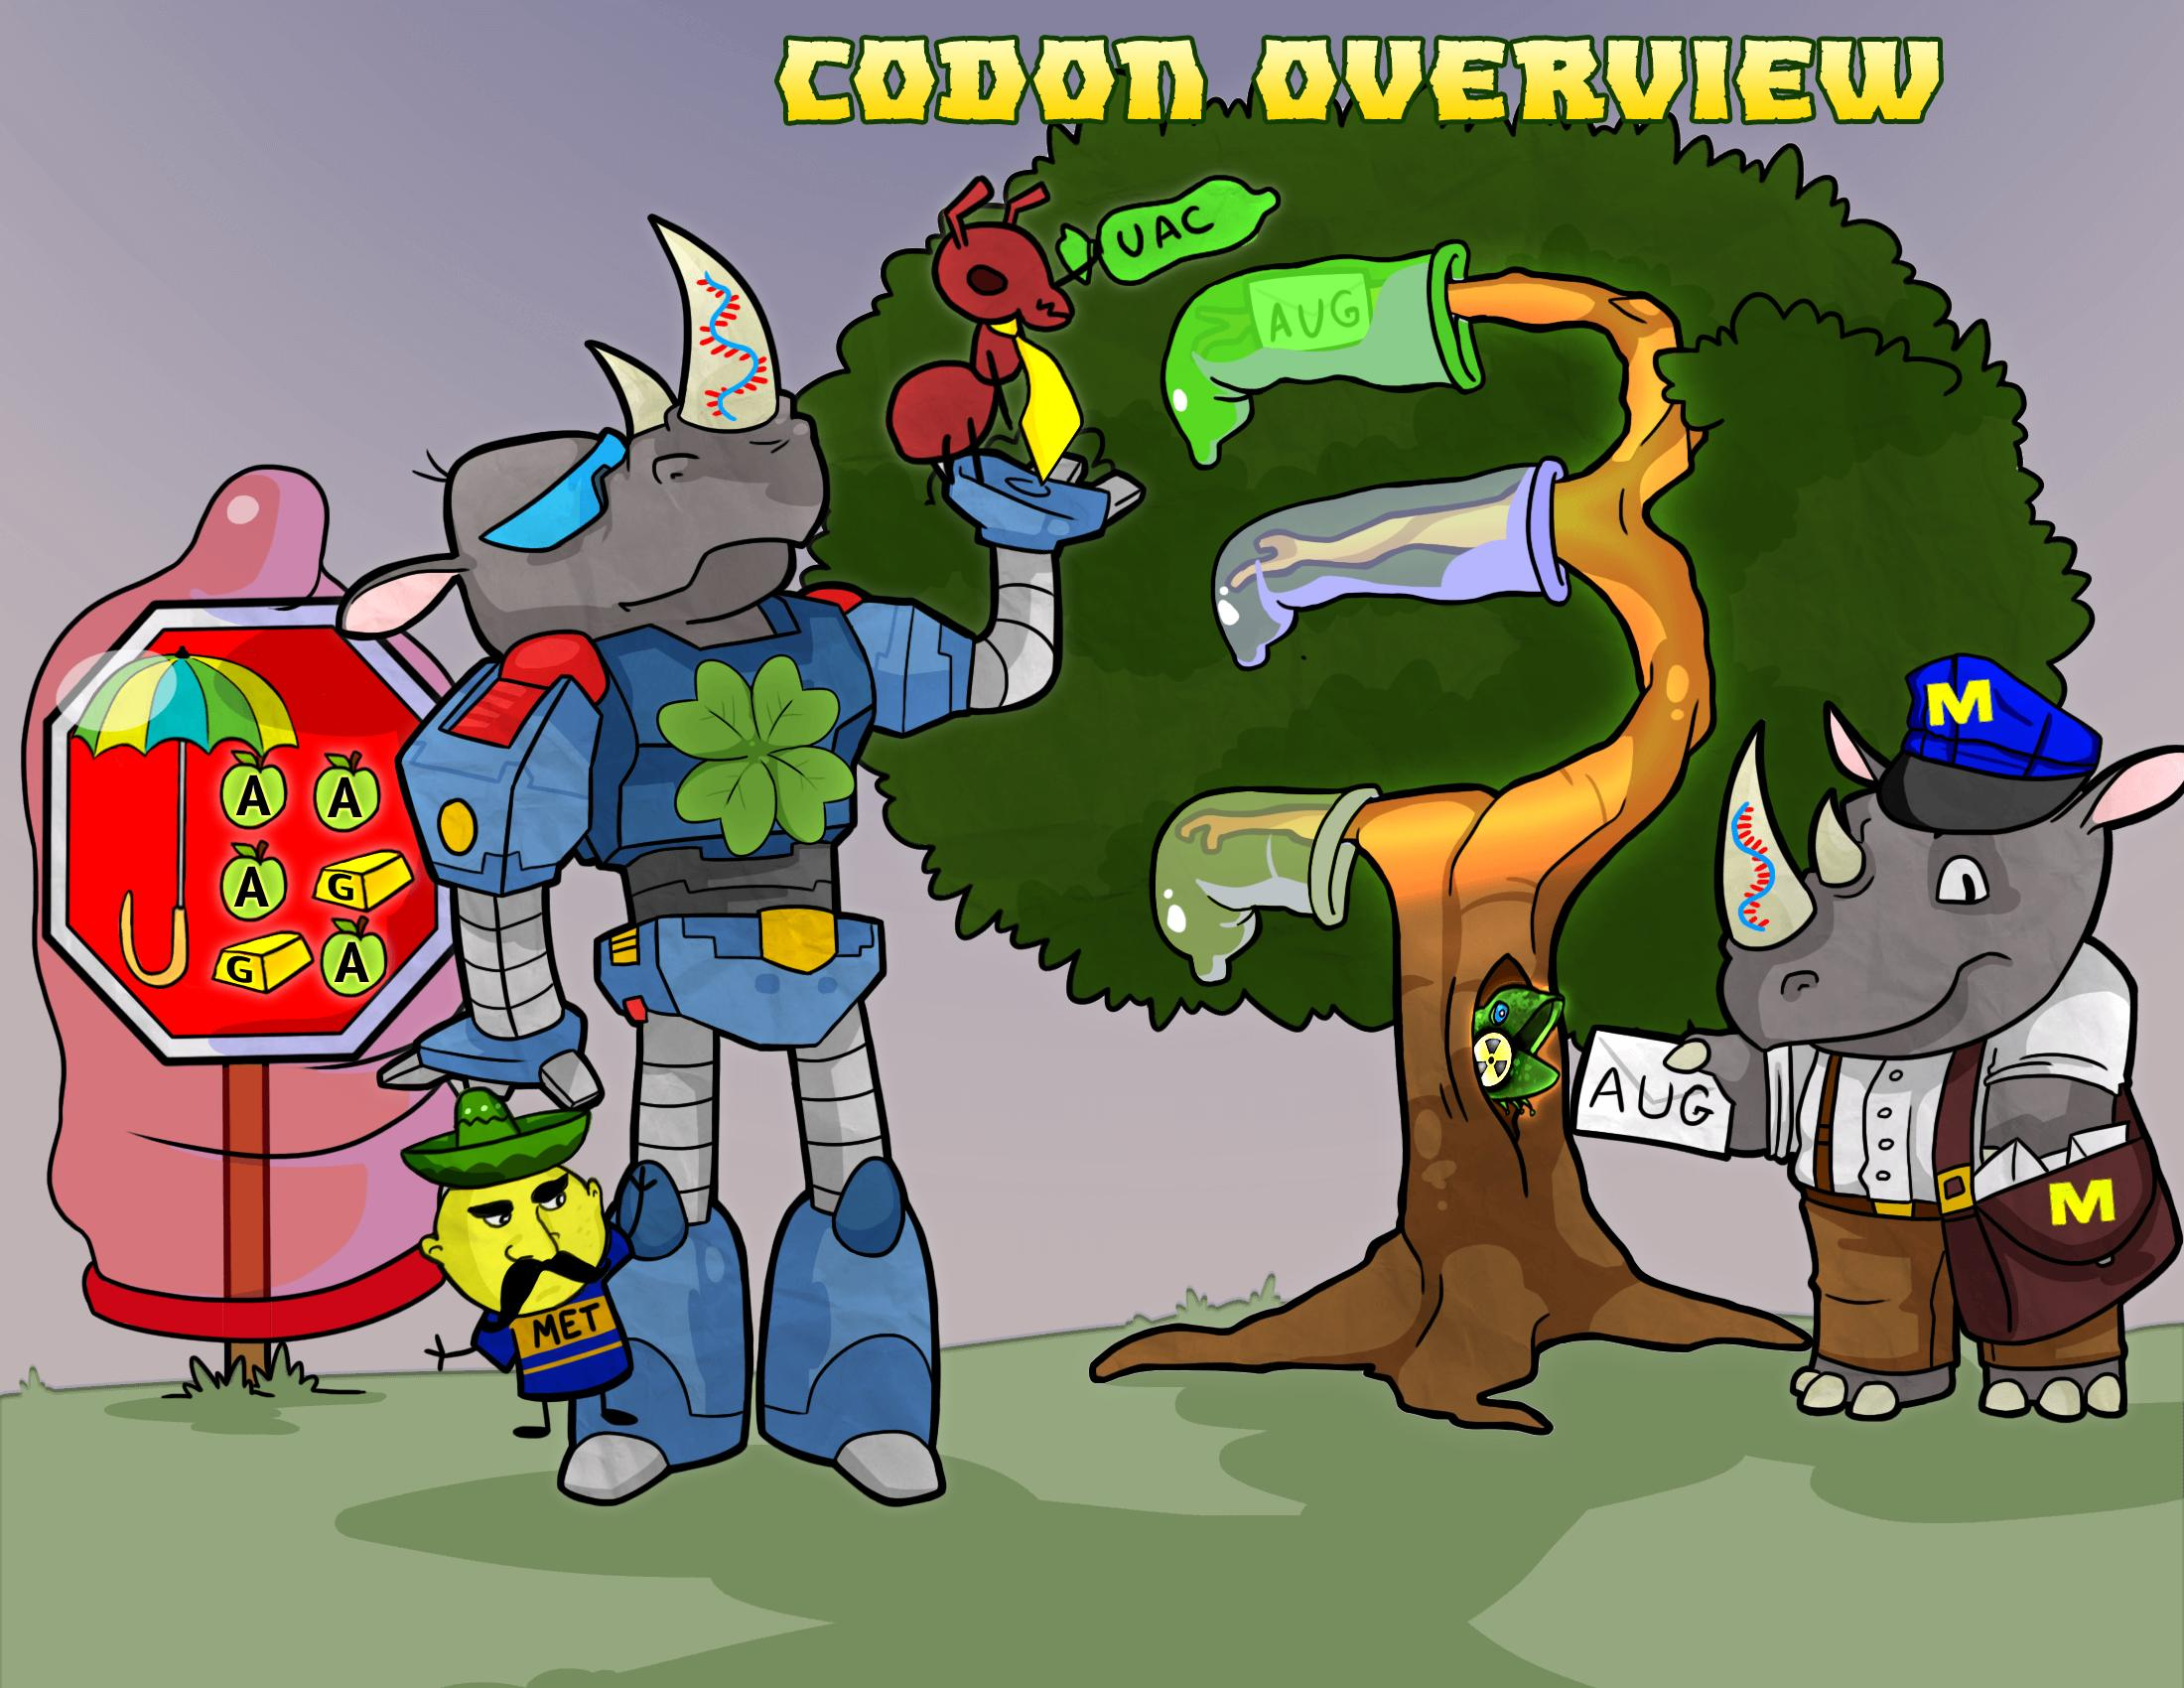 Codon Overview